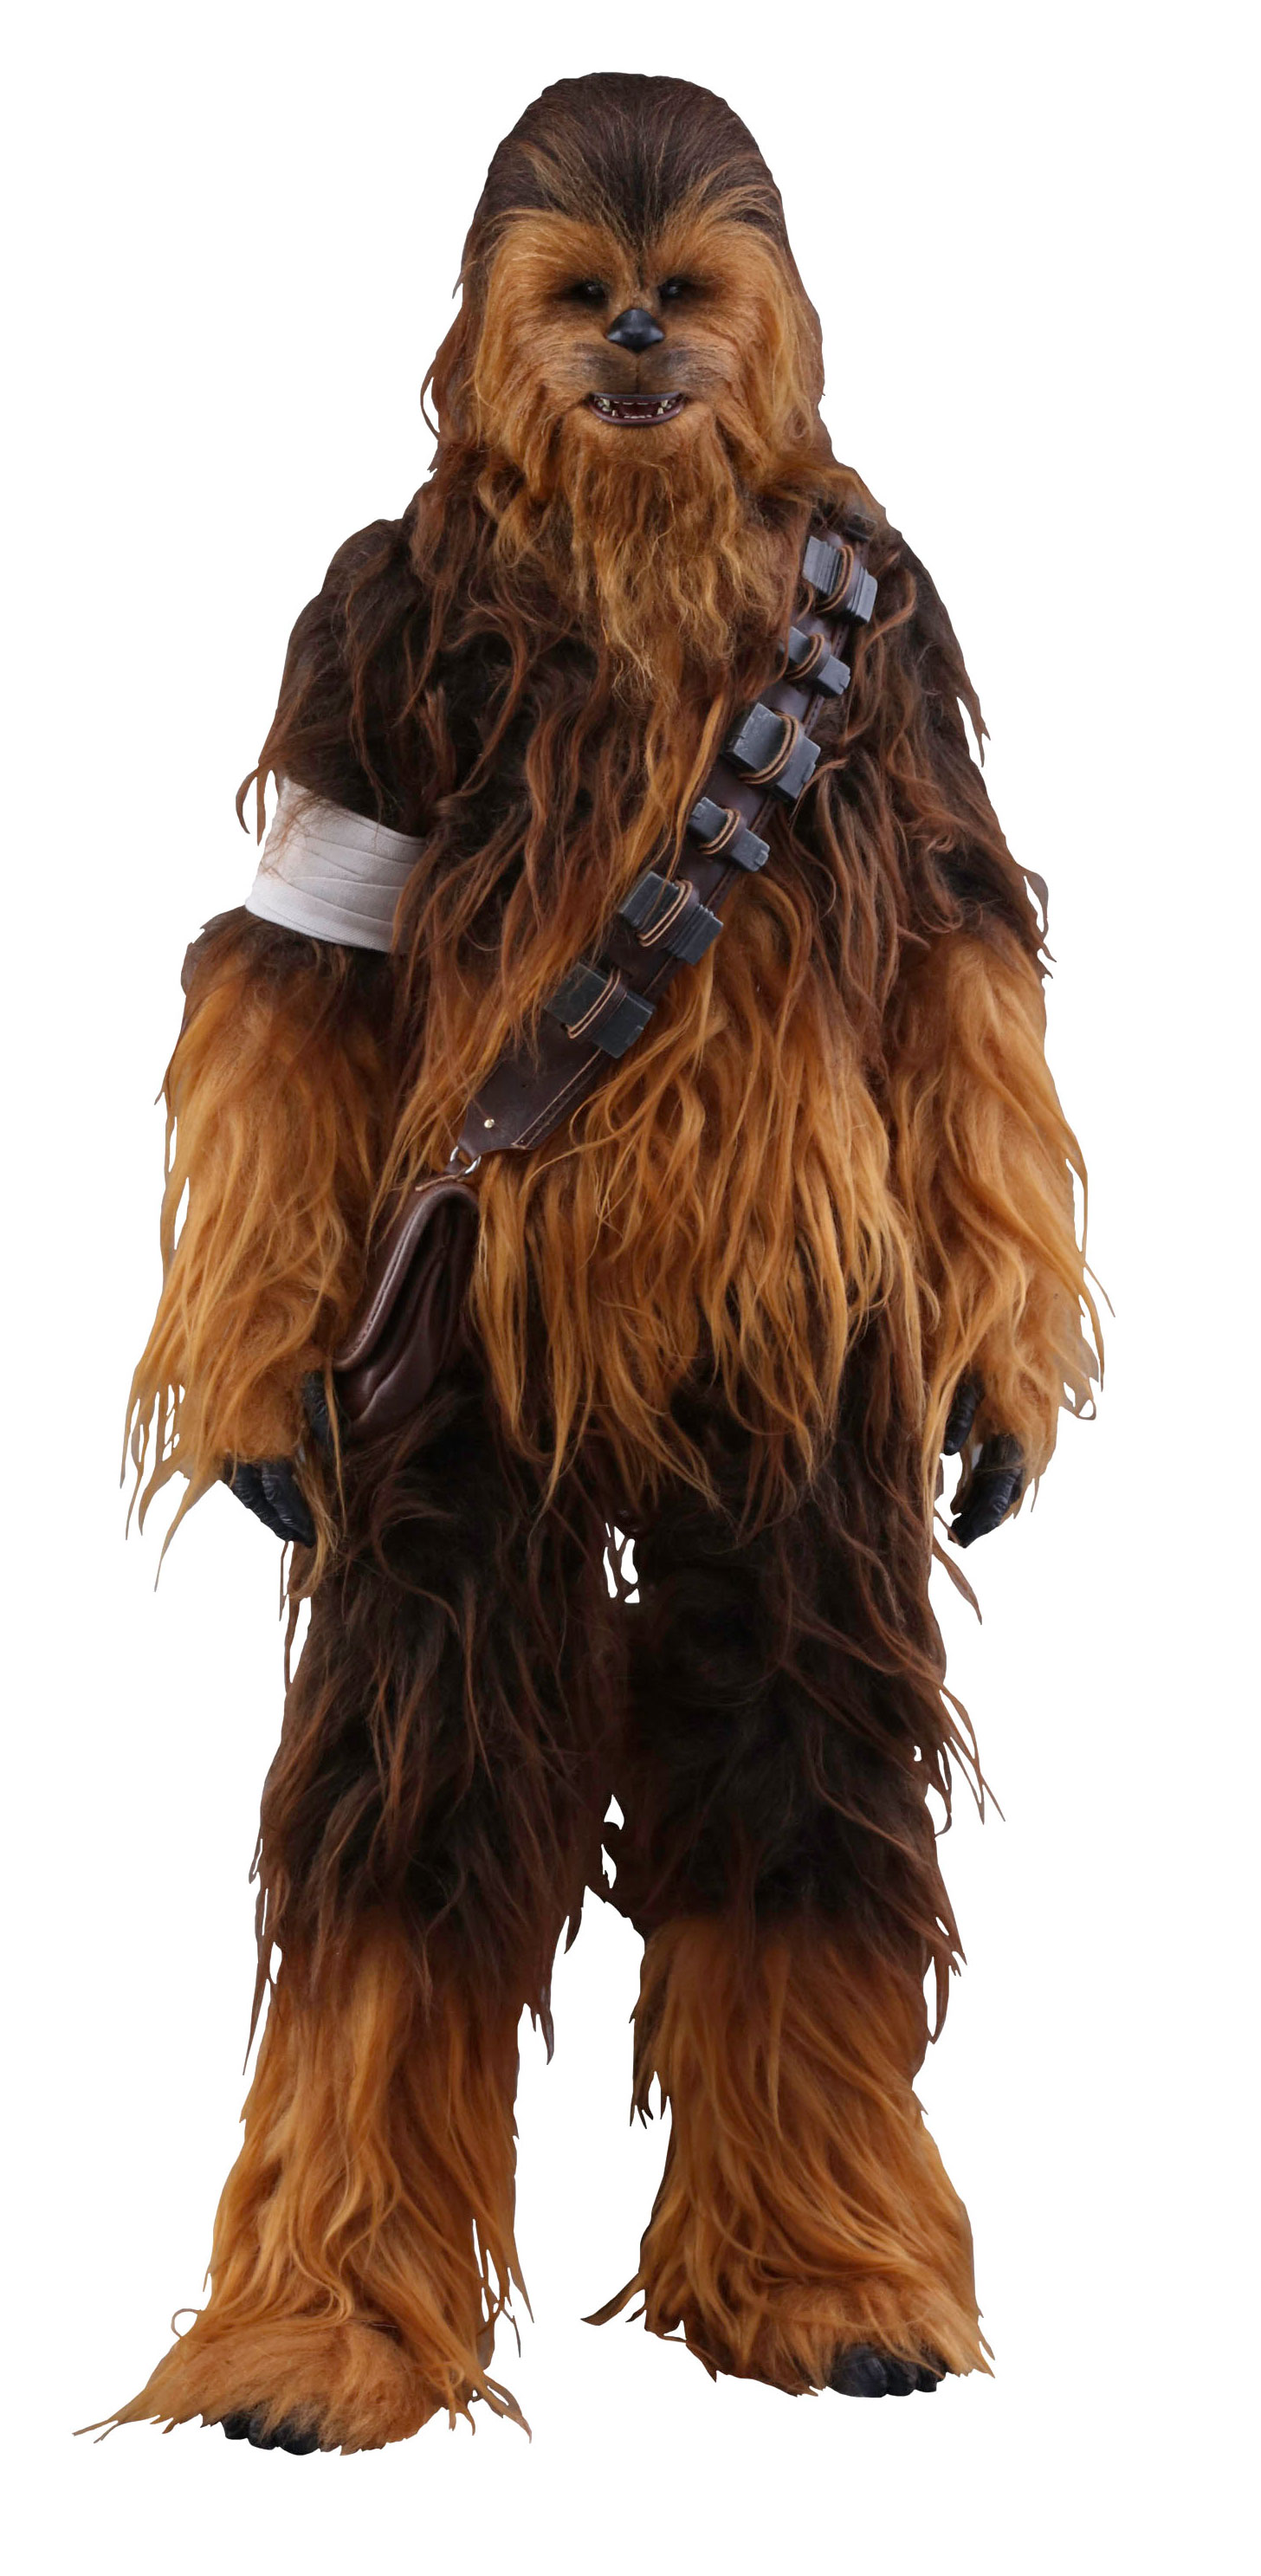 star wars episode vii movie masterpiece action figure 1 6 chewbacca 36 cm animegami store. Black Bedroom Furniture Sets. Home Design Ideas